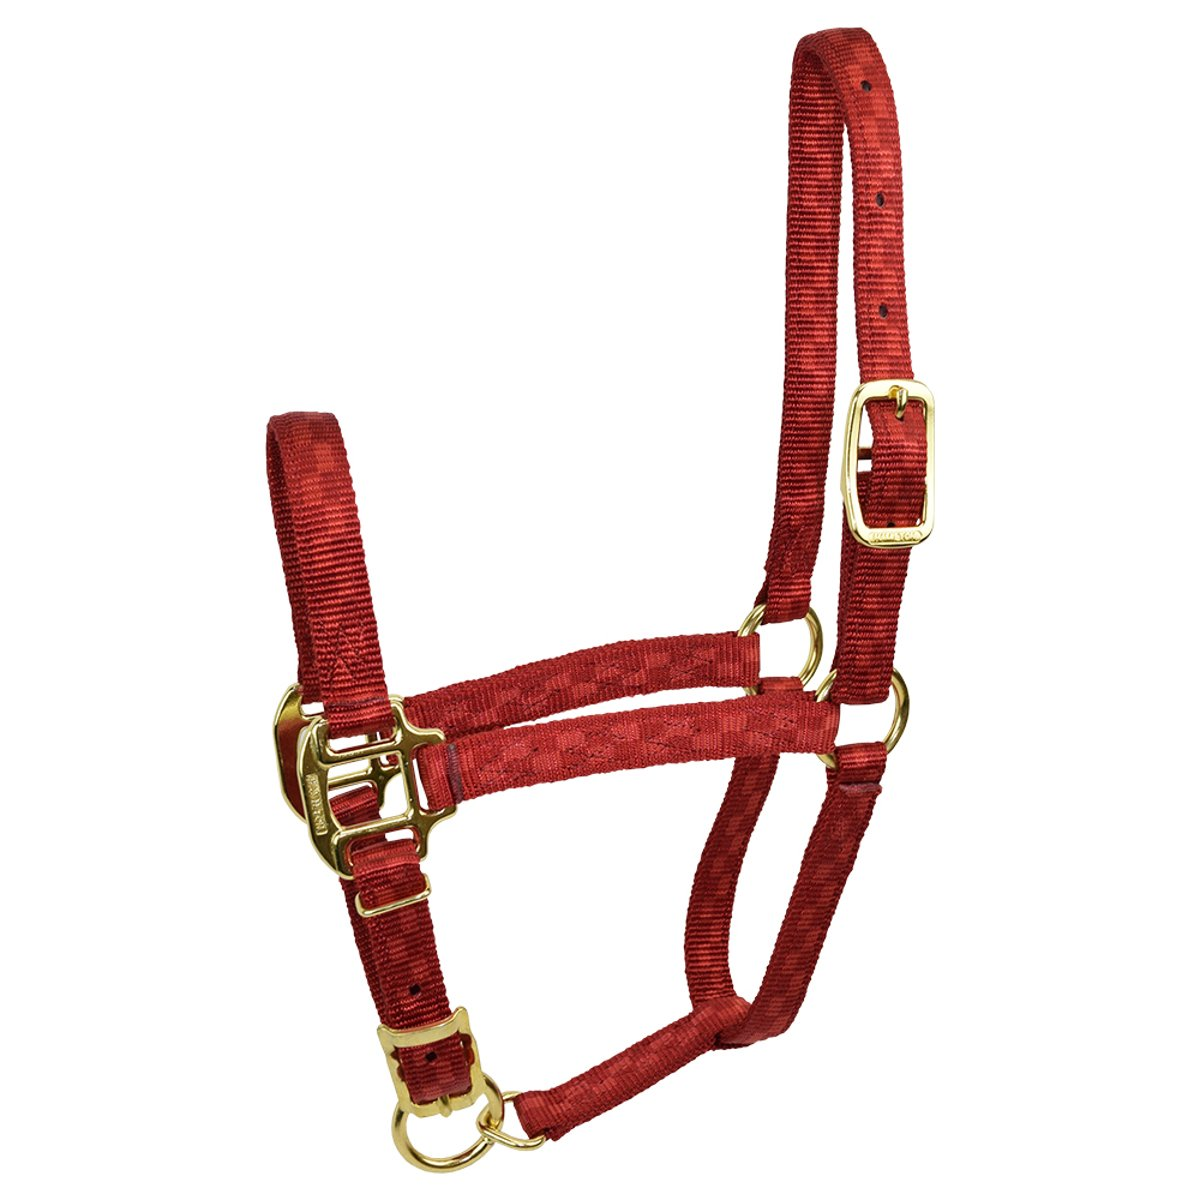 Checkered Red Weanling Checkered Red Weanling Hamilton Adjustable Quality 200-300 lb Weanling Horse Halter, 3 4 , Red Checkerboard